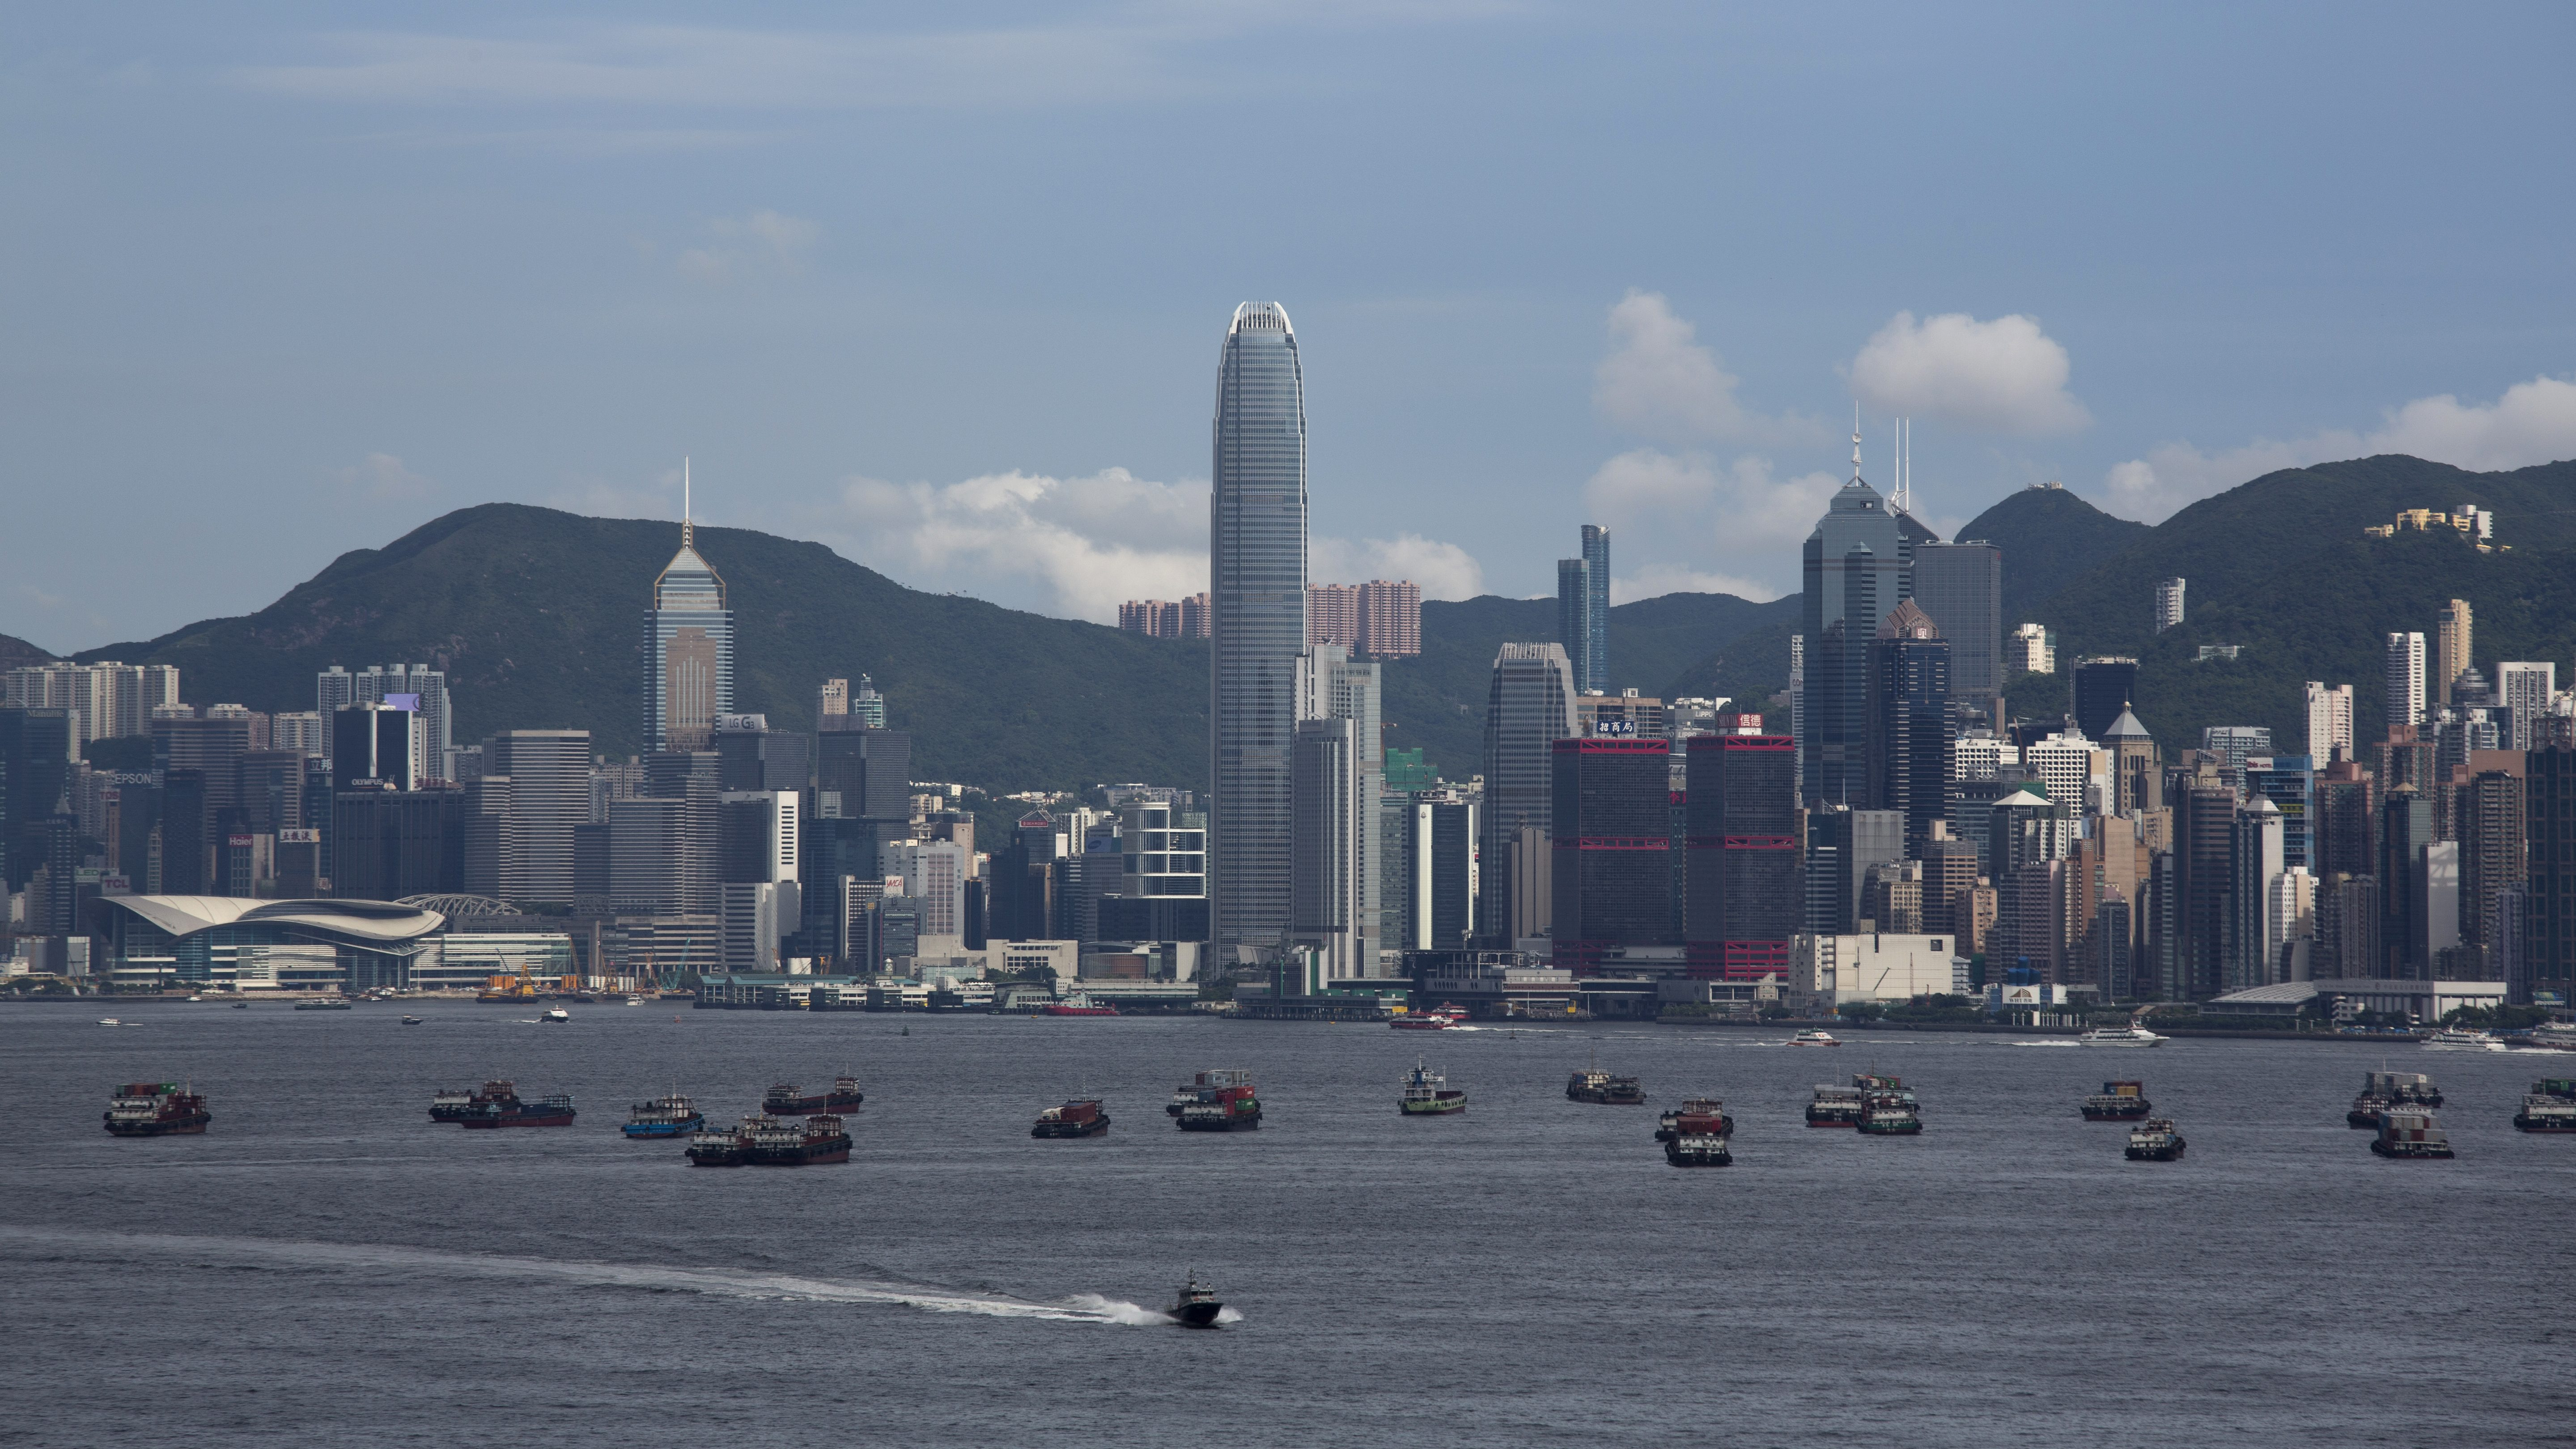 Boats lie at anchor in front of residential and commercial high-rise buildings on Hong Kong island, in Hong Kong, China, 07 August 2014. Consultancy firm New World Wealth claimed that Hong Kong has 15,400 multimillionaires, those with at least US10 million US dollars in net assets, more than any other city in the world. The consultancy said New York came second and London third with 14,300 and 9,700 multimillionaires respectively. Those Hong Kong wealthy and super wealthy residents hold net assets totalling a minimum of some 350 billion US dollars.